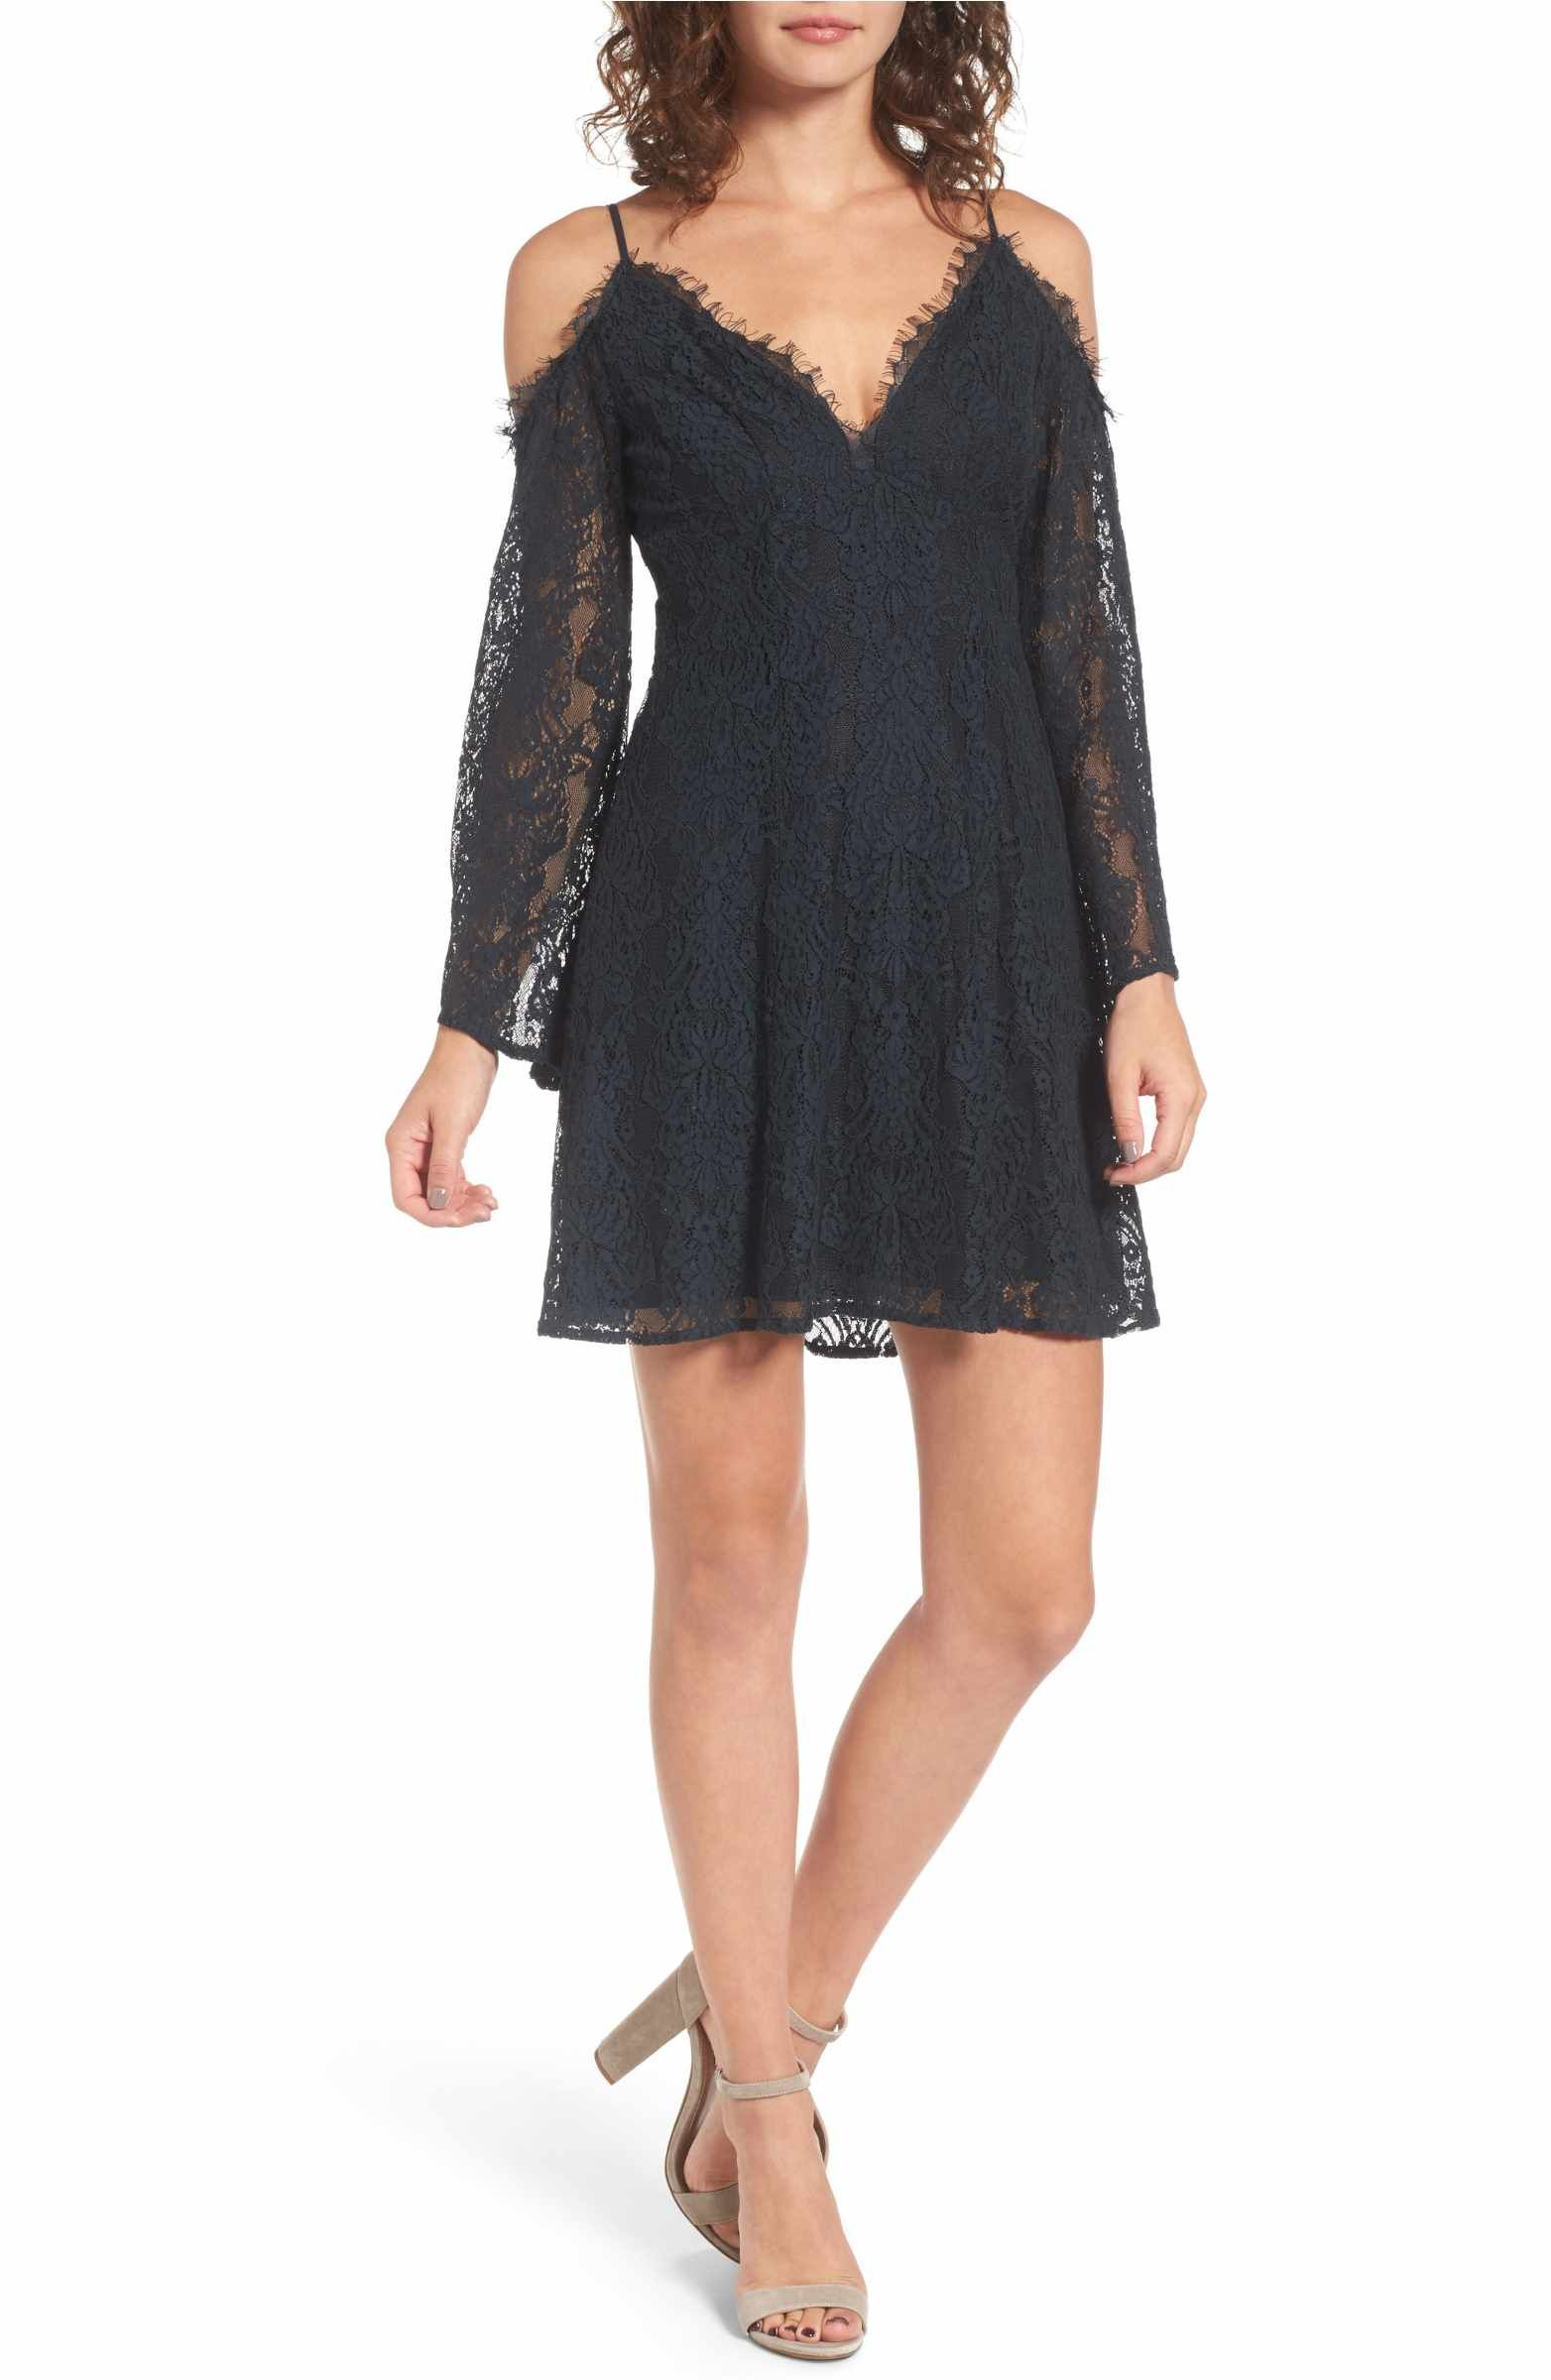 Lace cold shoulder dress shoulder dress cold shoulder and lush